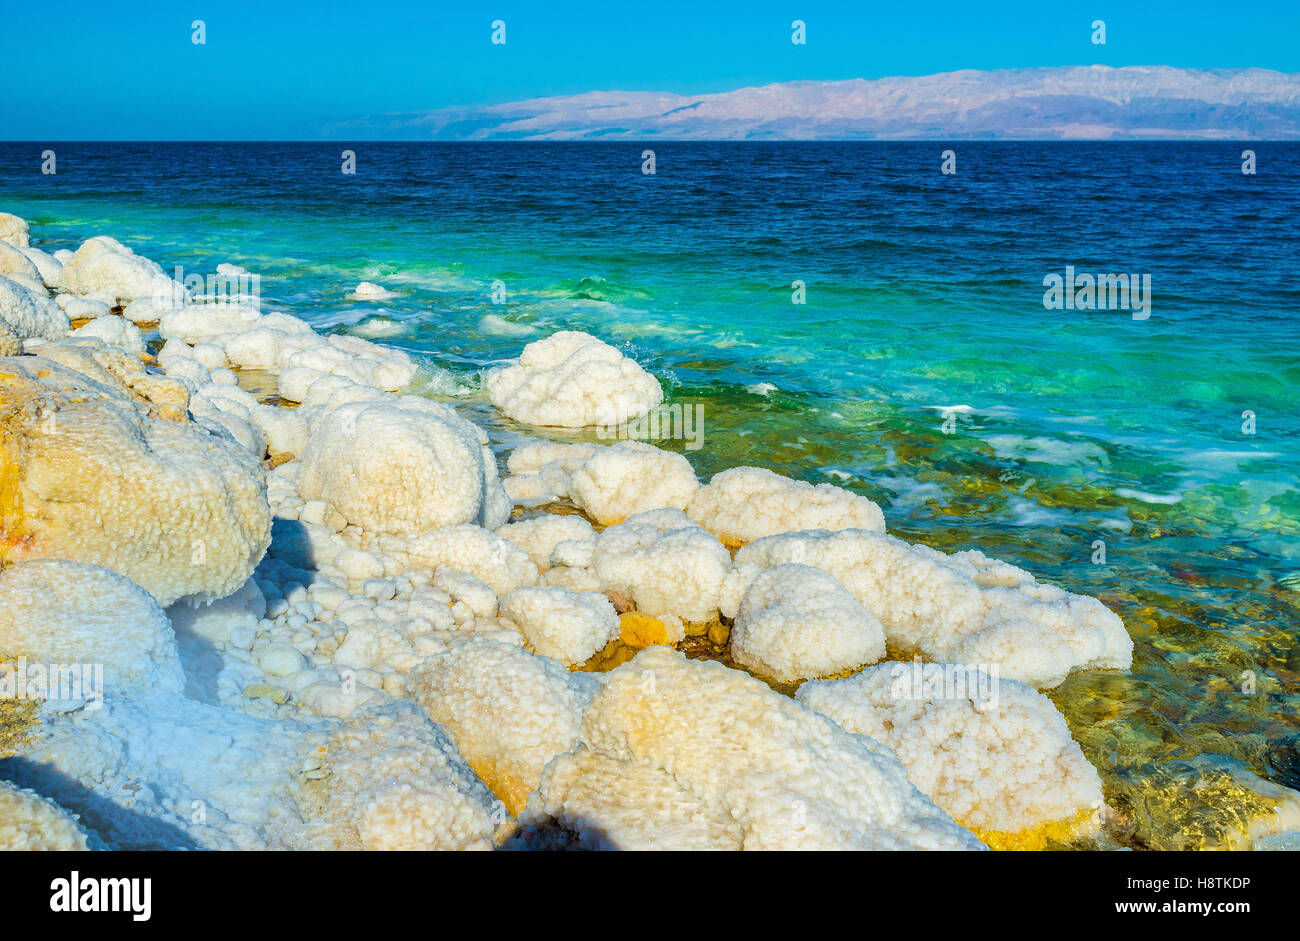 The harsh environment of the Dead Sea due to its salinity, making it completely uninhabited, Ein Gedi, Israel. - Stock Image